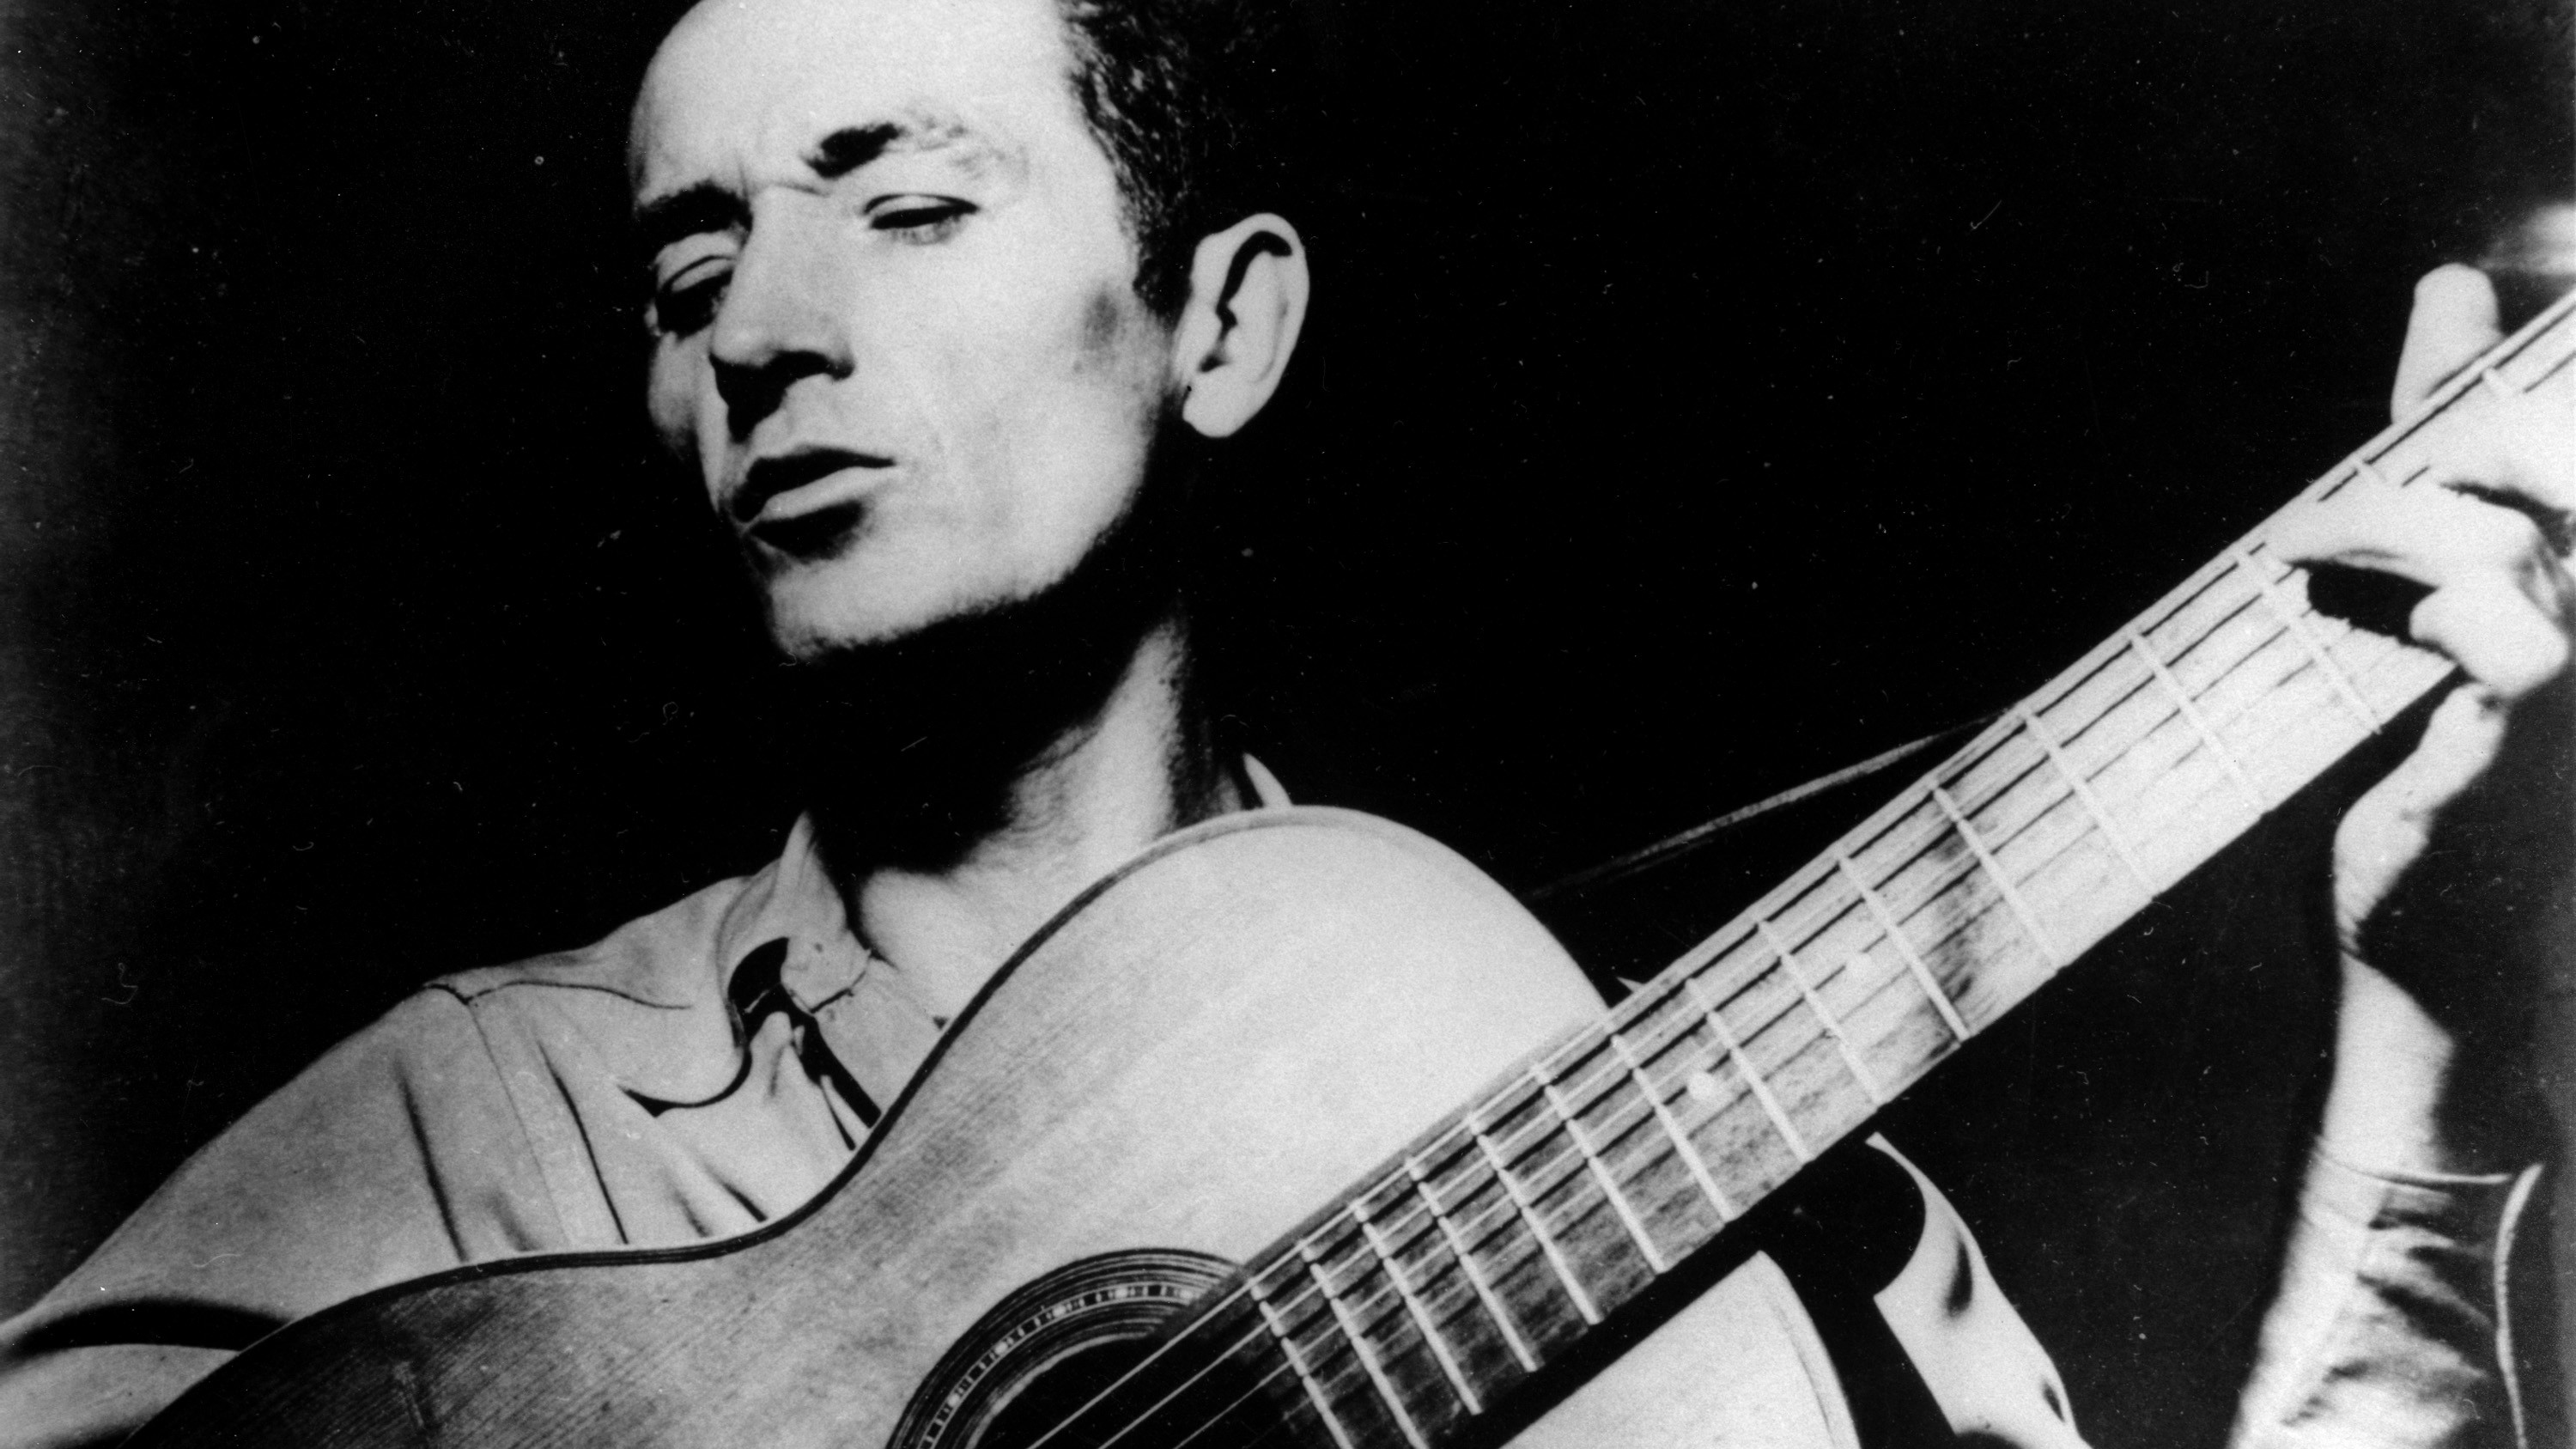 """This is an undated photograph of folk singer Woody Guthrie, singing a song and playing his guitar.  Guthrie has written hundreds of songs, celebrating migrant workers, pacifists, and underdogs.  Two of his well-known songs are """"So Long, It's Been Good to Know You,"""" and """"This Land is Your Land."""""""